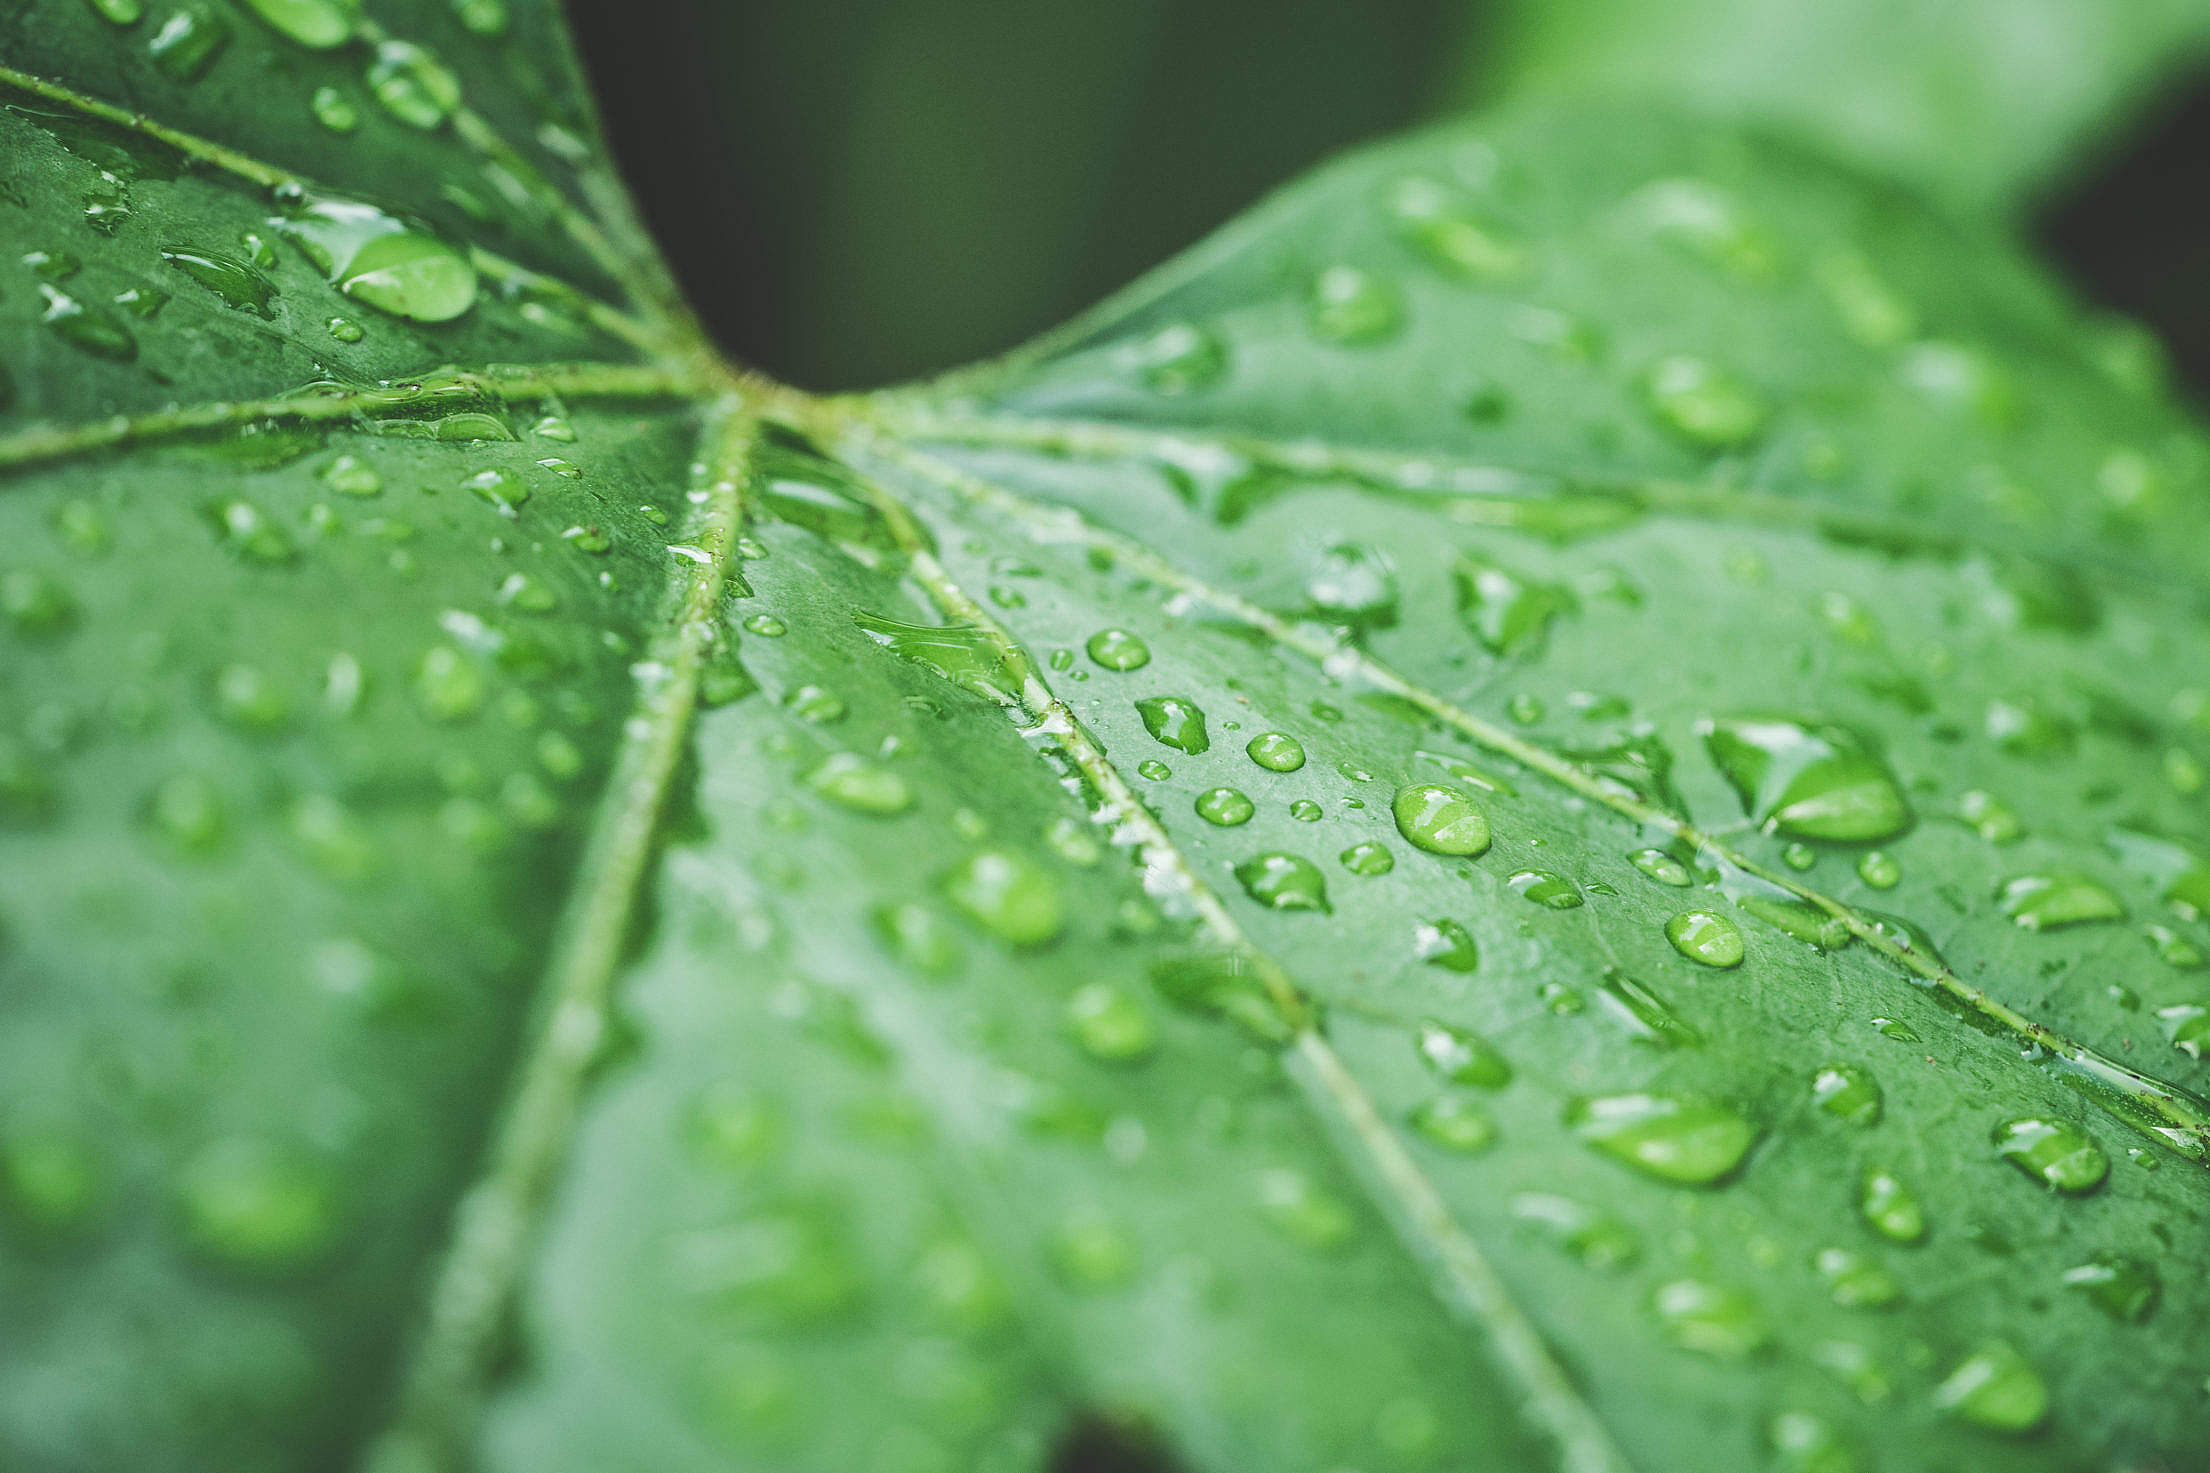 Raindrops on Green Leaf Close Up Free Stock Photo